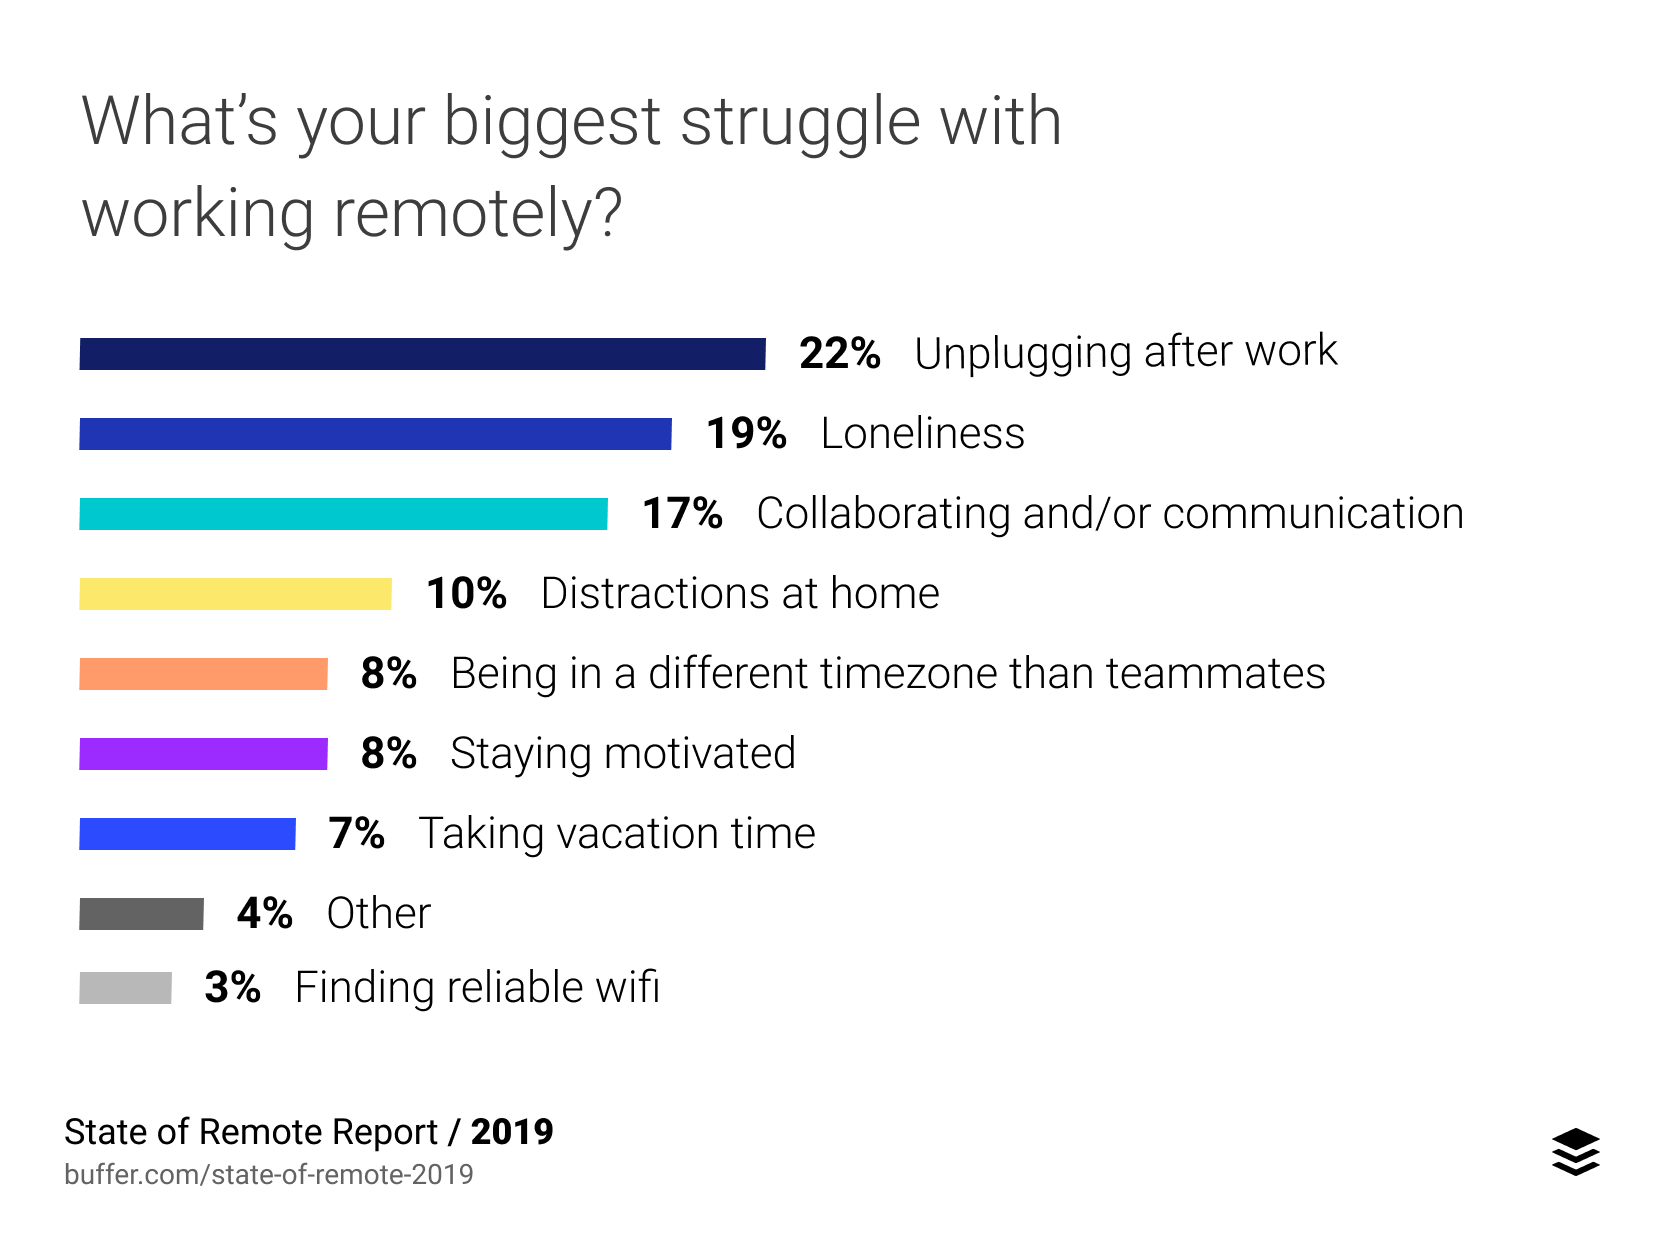 Chart showing the challenges faced by remote workers